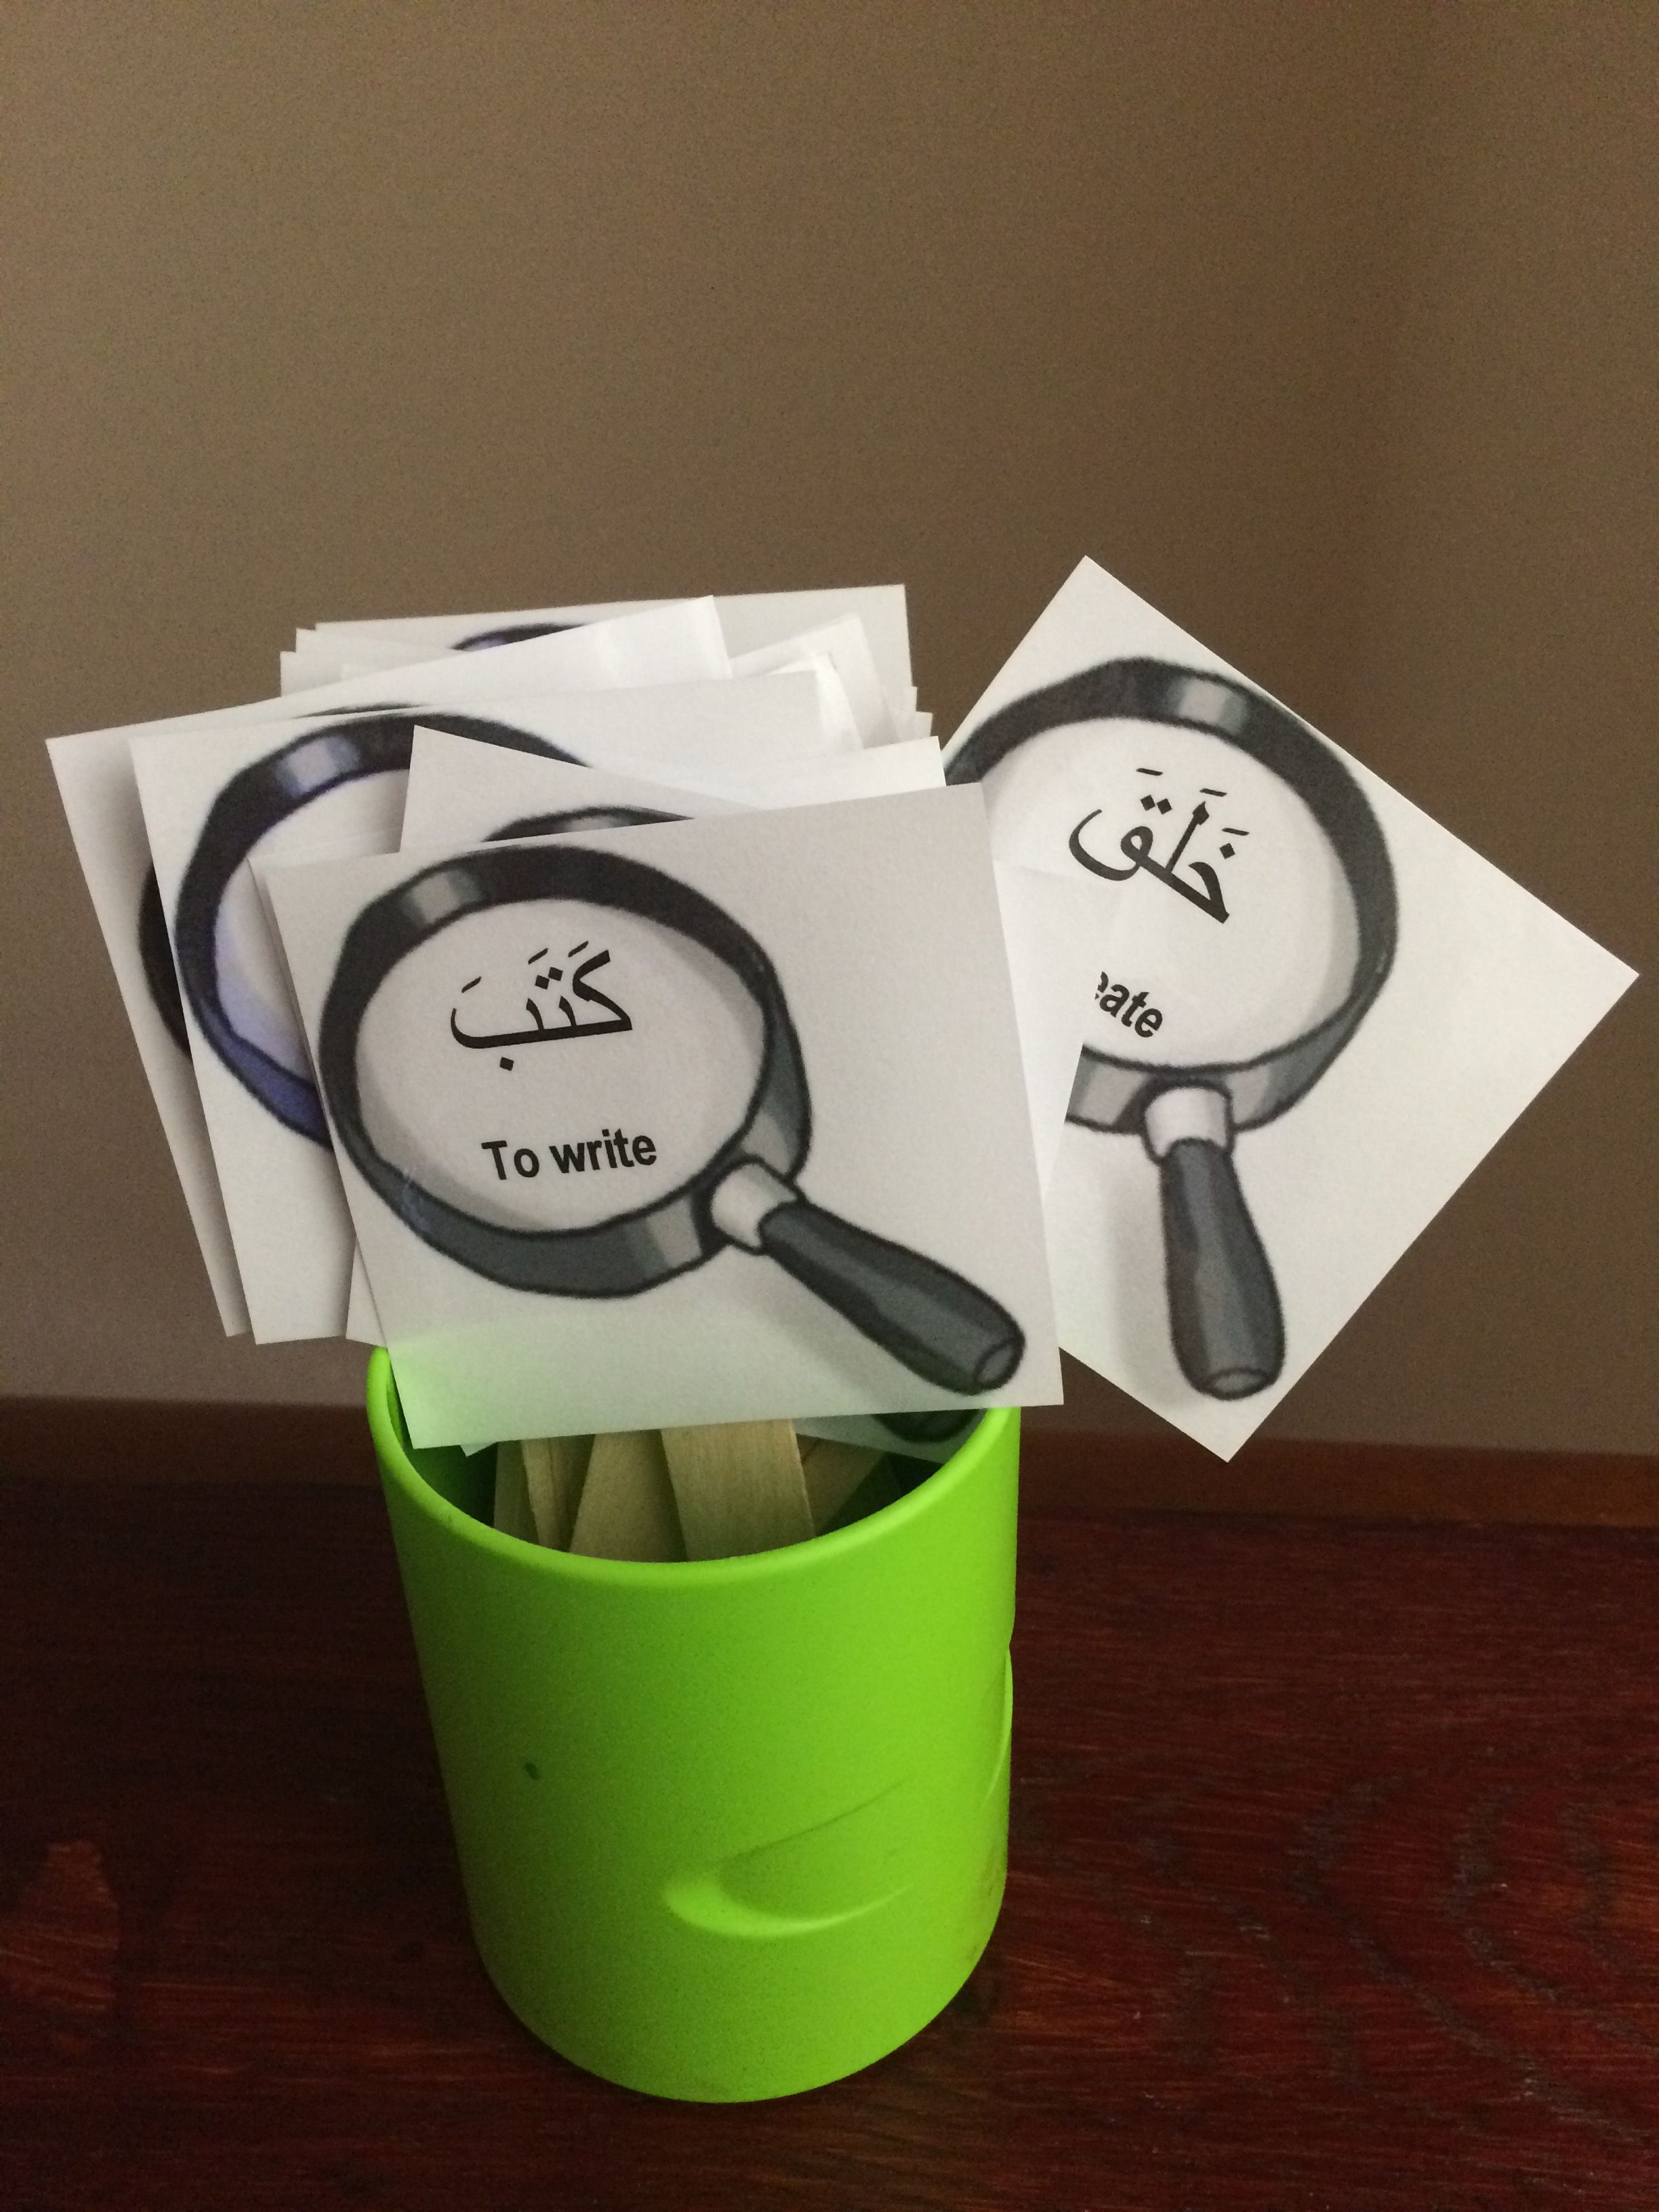 I Spy An Arabic Verb Game Free At Abicadventures